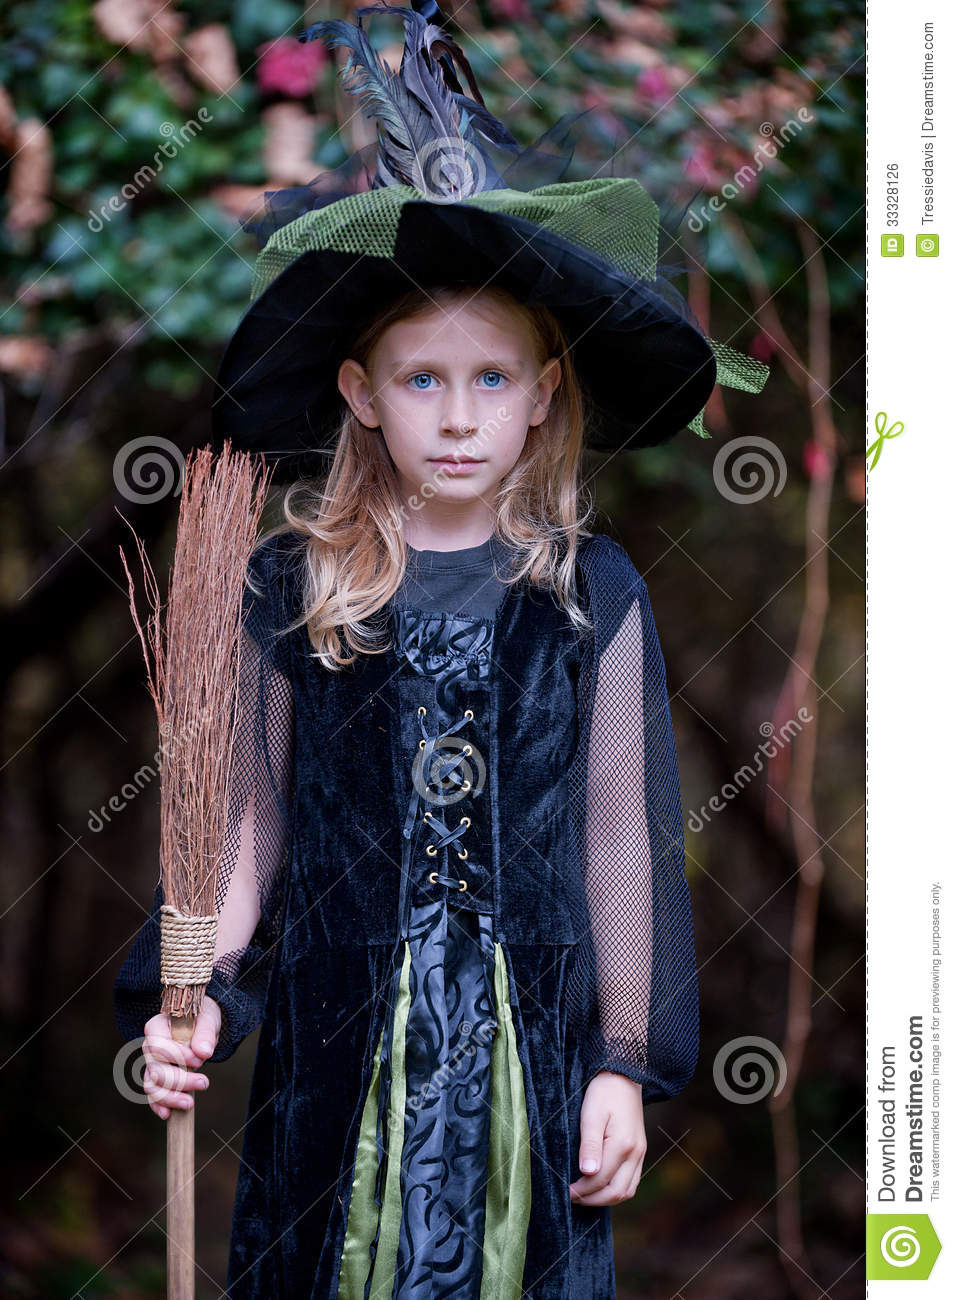 Little Girl In Witch Costume Royalty Free Stock Image - Image ...